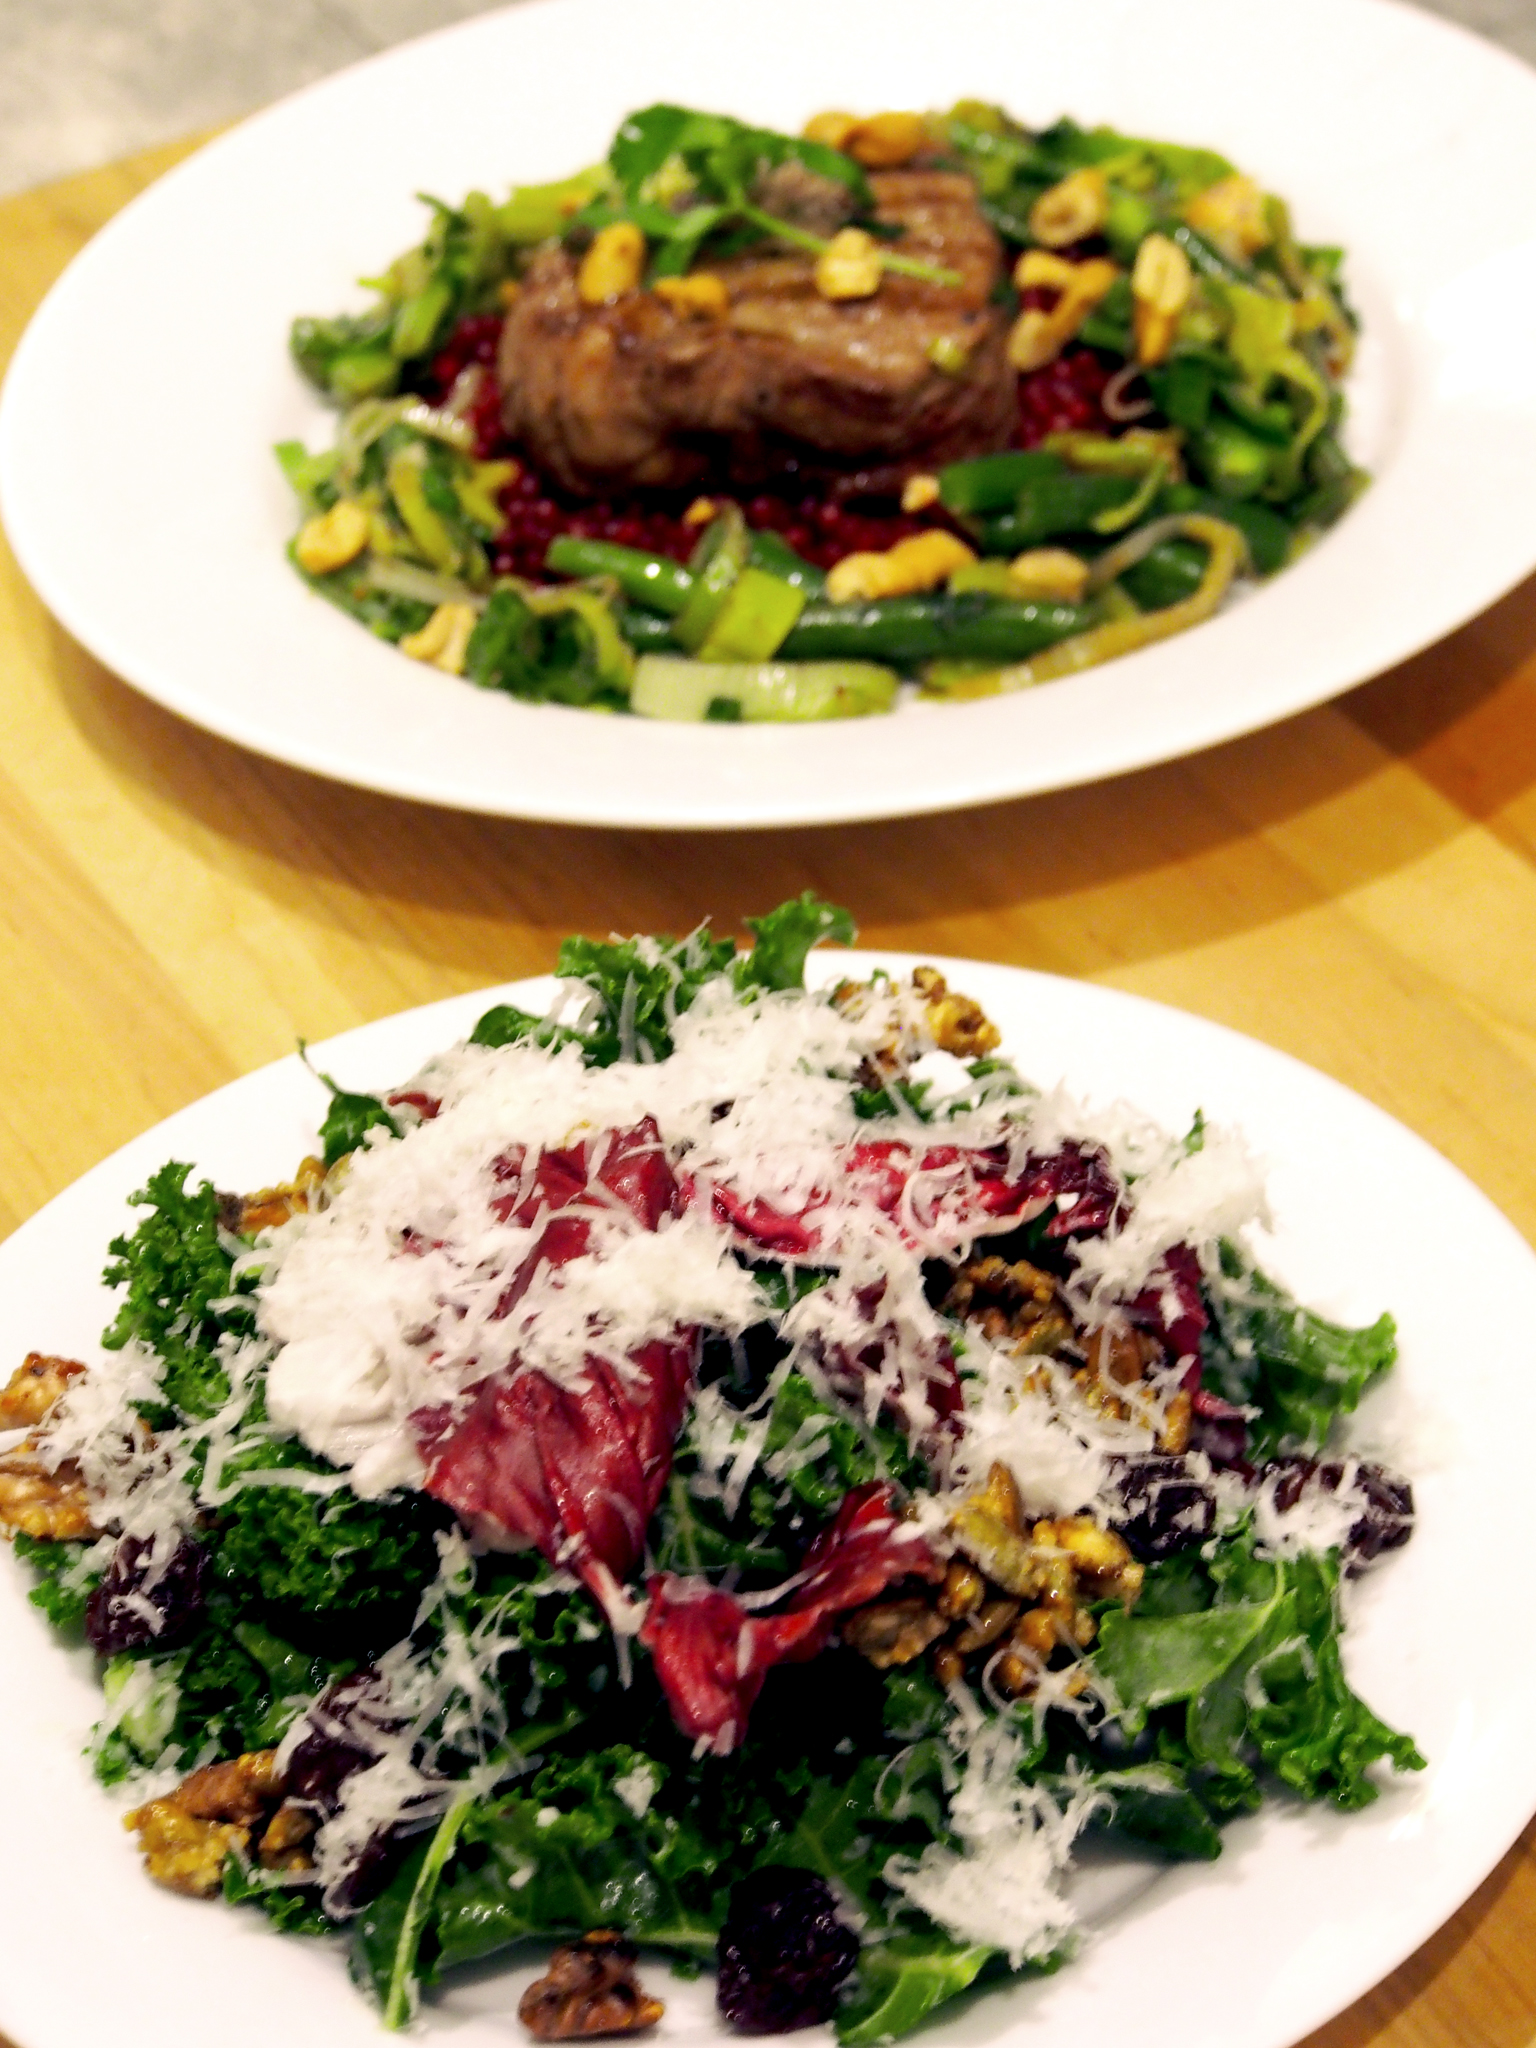 Cherry, Kale & Walnut Salad with Lavender Steak on Pearl Couscous from  Meisterdish  in NYC.